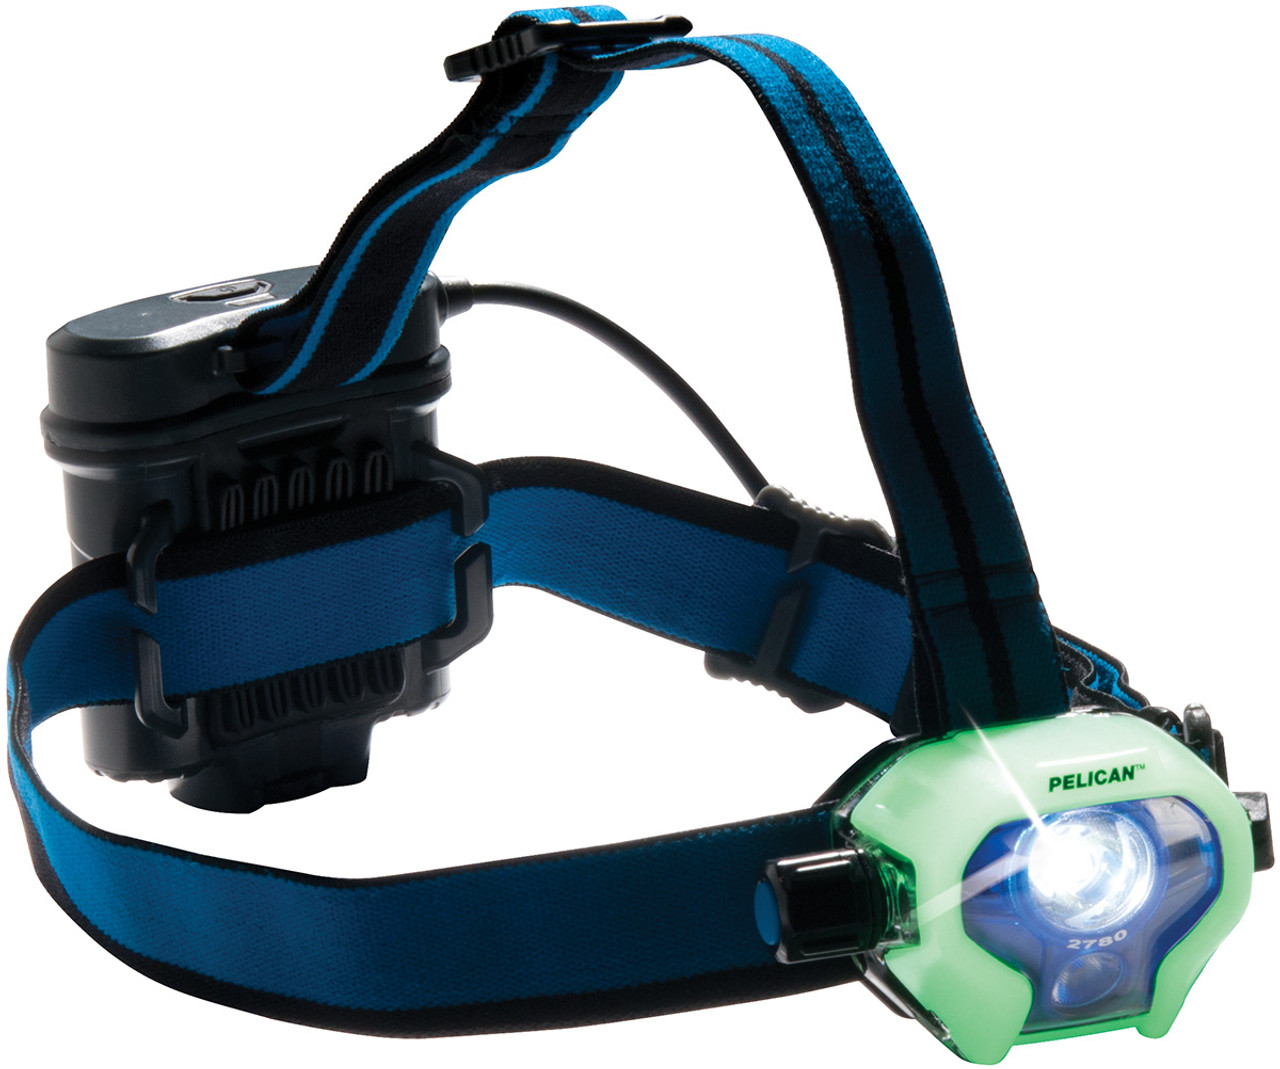 Pelican LED Headlamp, 430 lumens, 4 AA Batteries Included, with 3 Interchangeable Covers (Black, White, Photoluminescent) 2780